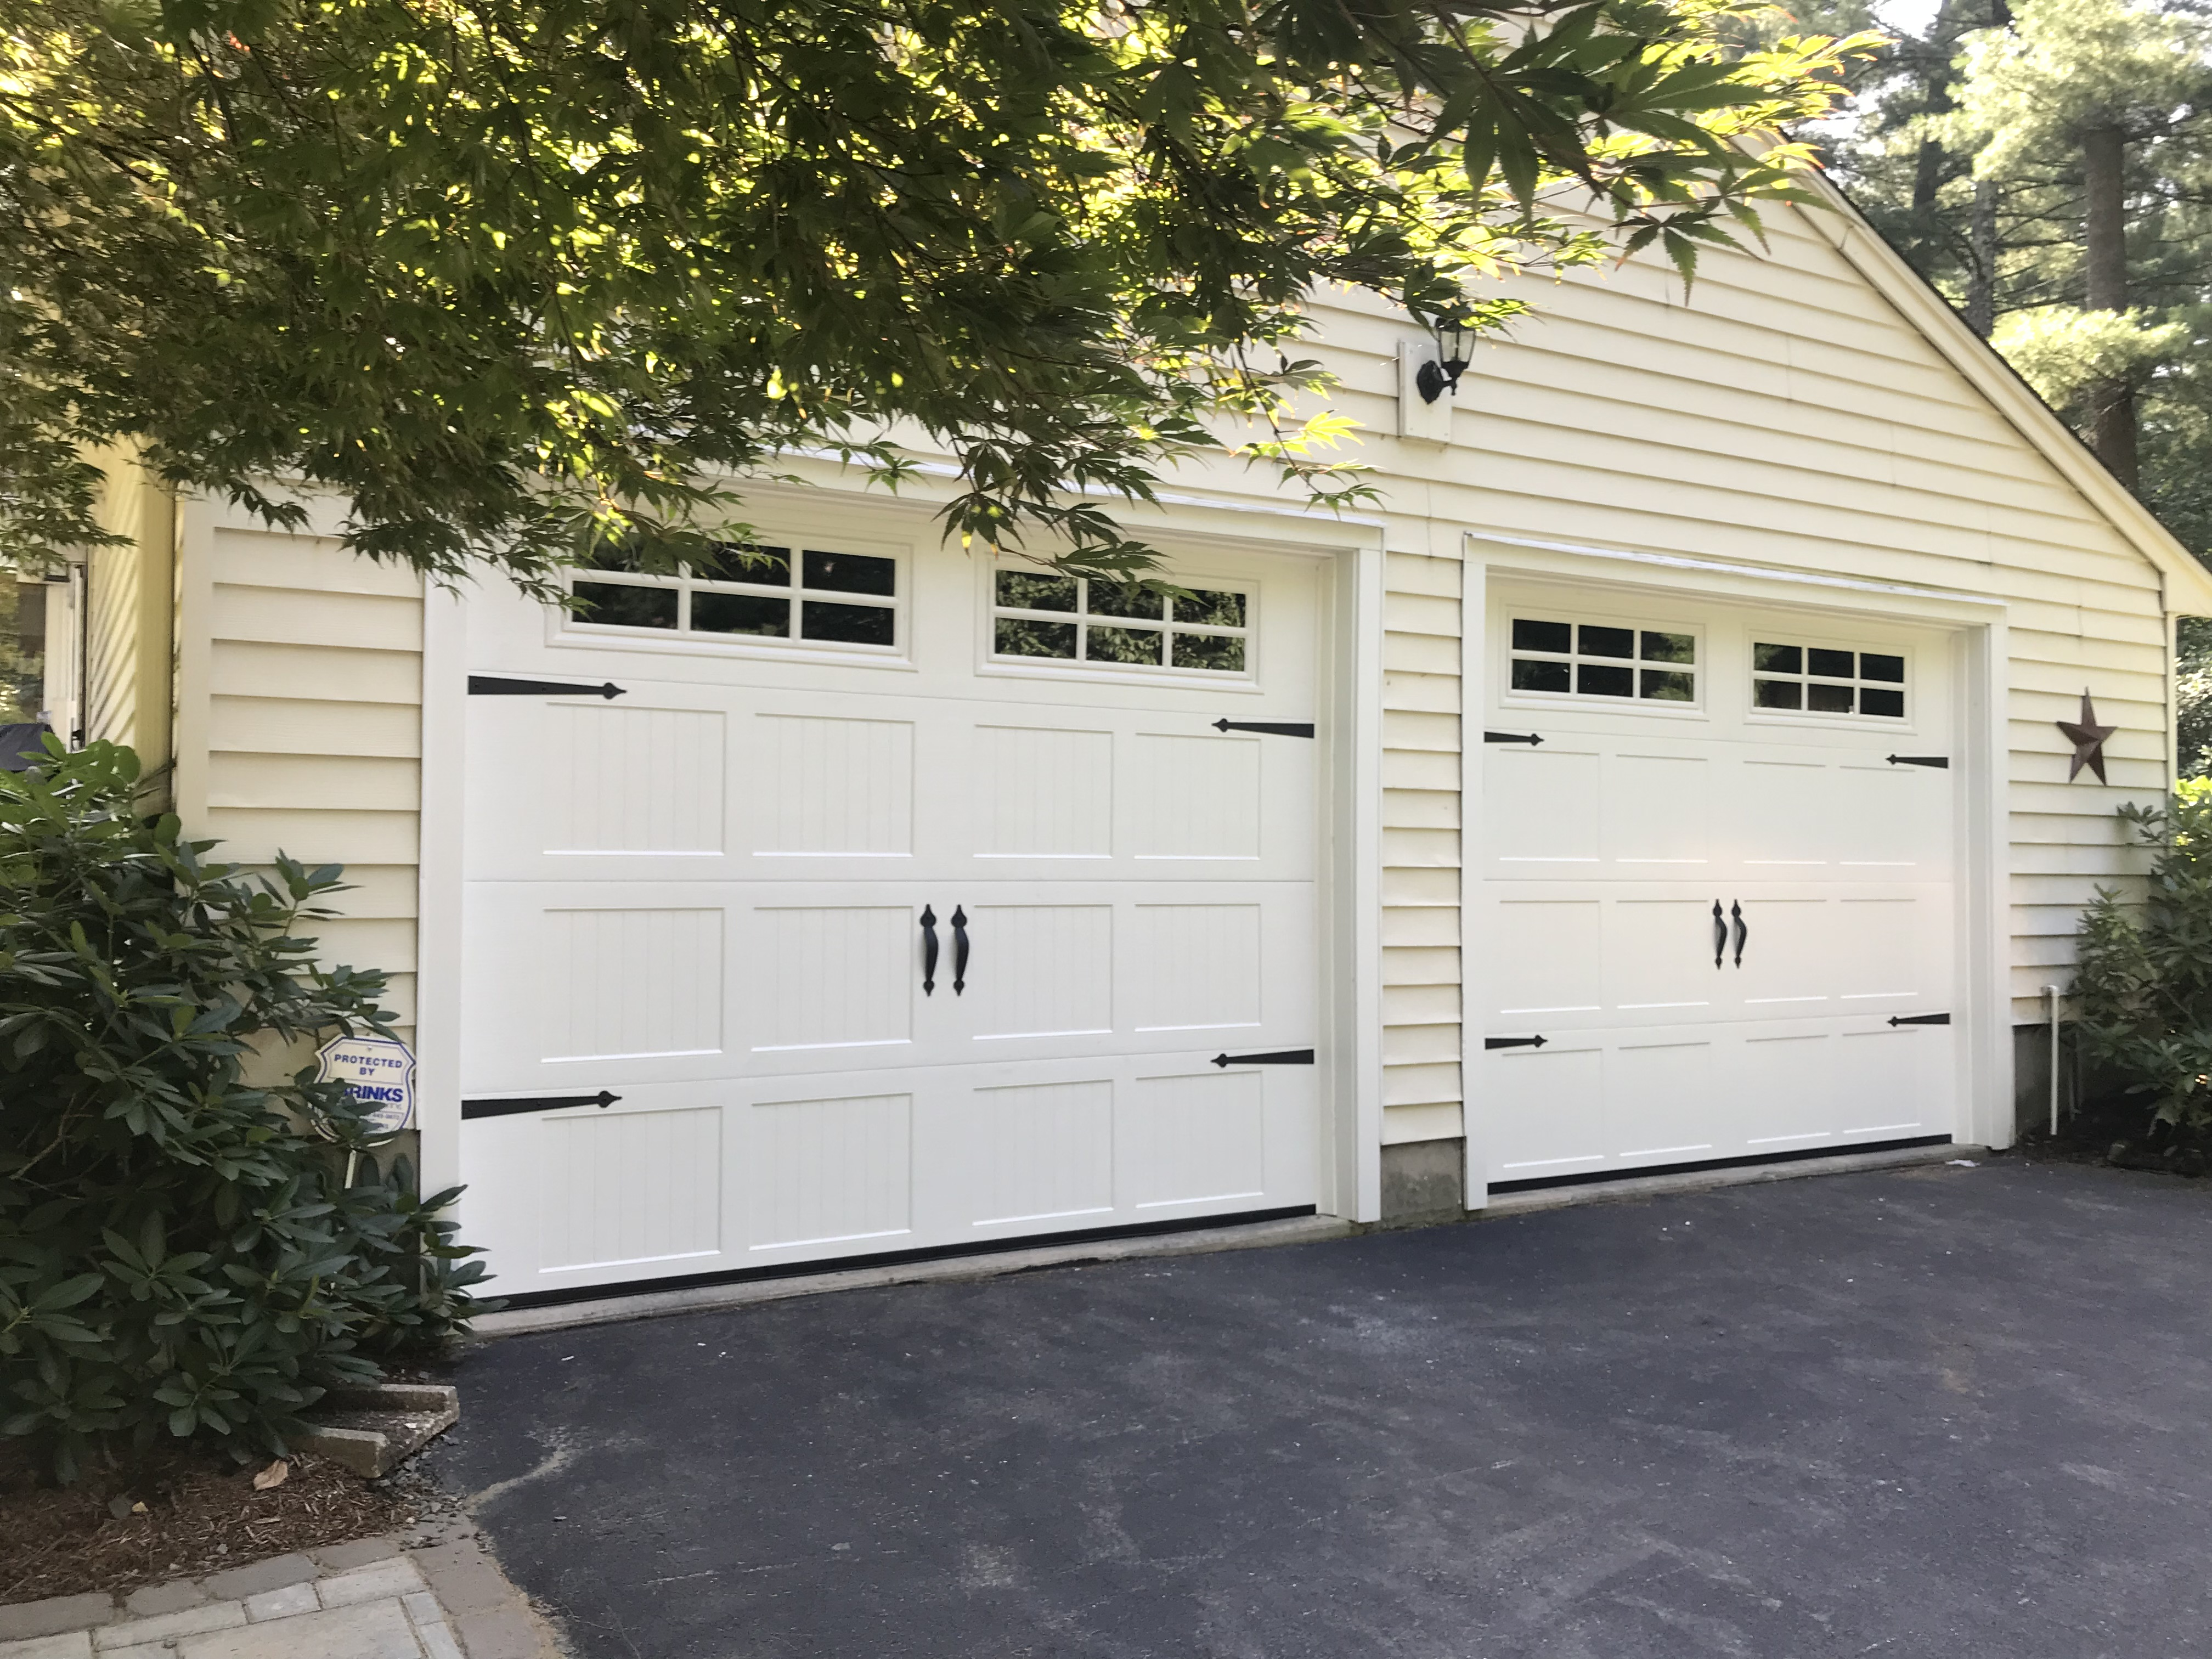 If you have beautiful property in Newington make sure your garage doors look great and are up to date